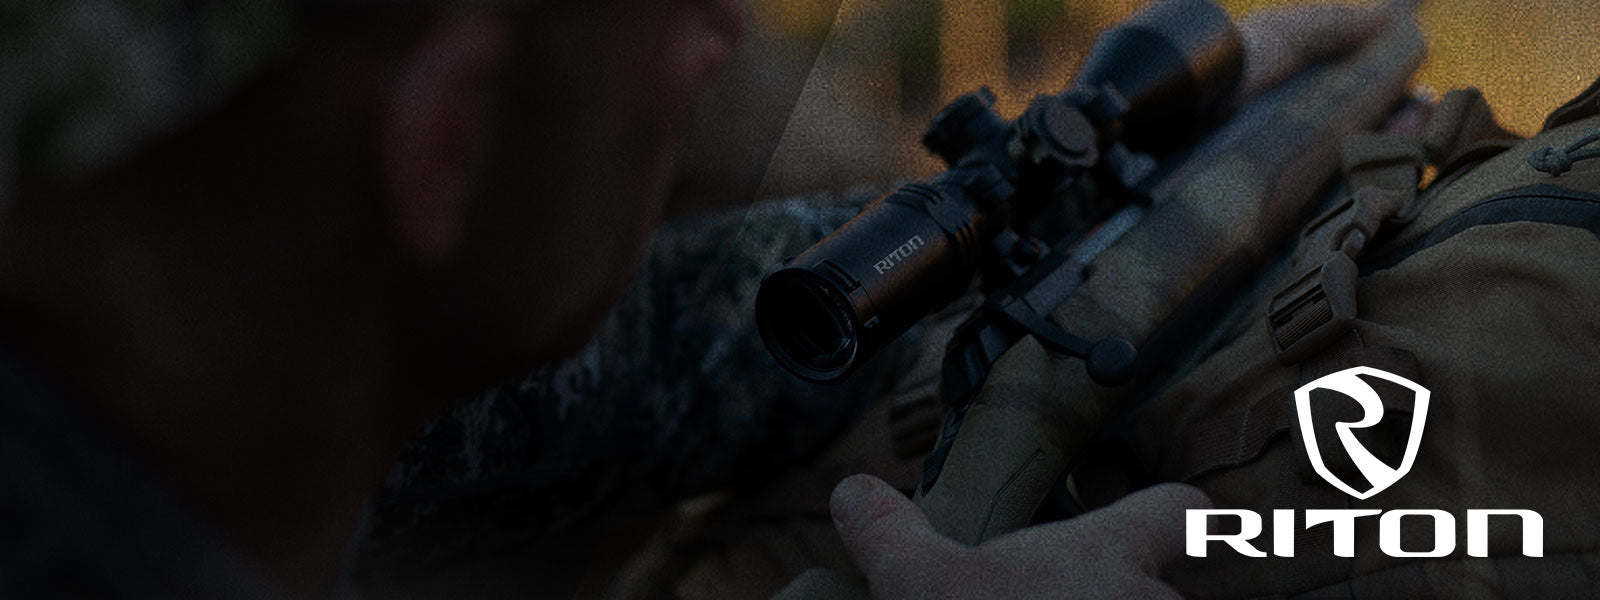 Riton Optics Partners with GoWild as Digital Advertising Options Tighten for Firearms Companies